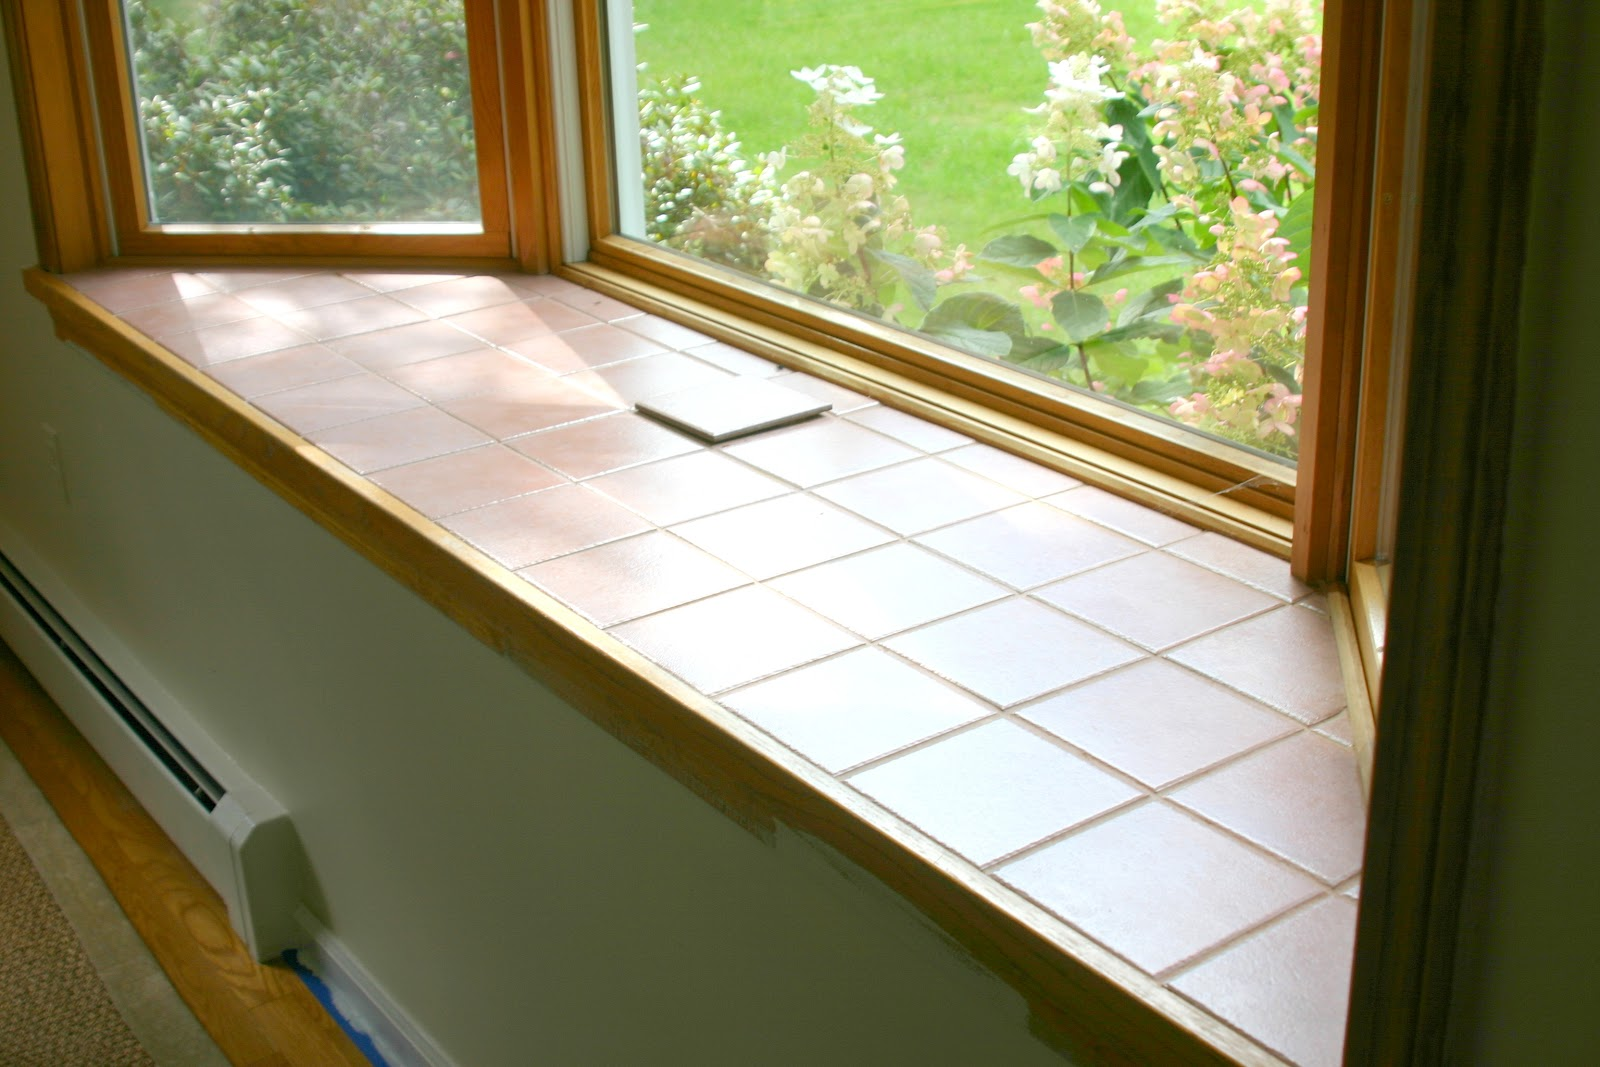 Painting tile and grout shine your light - Painting window sills exterior set ...